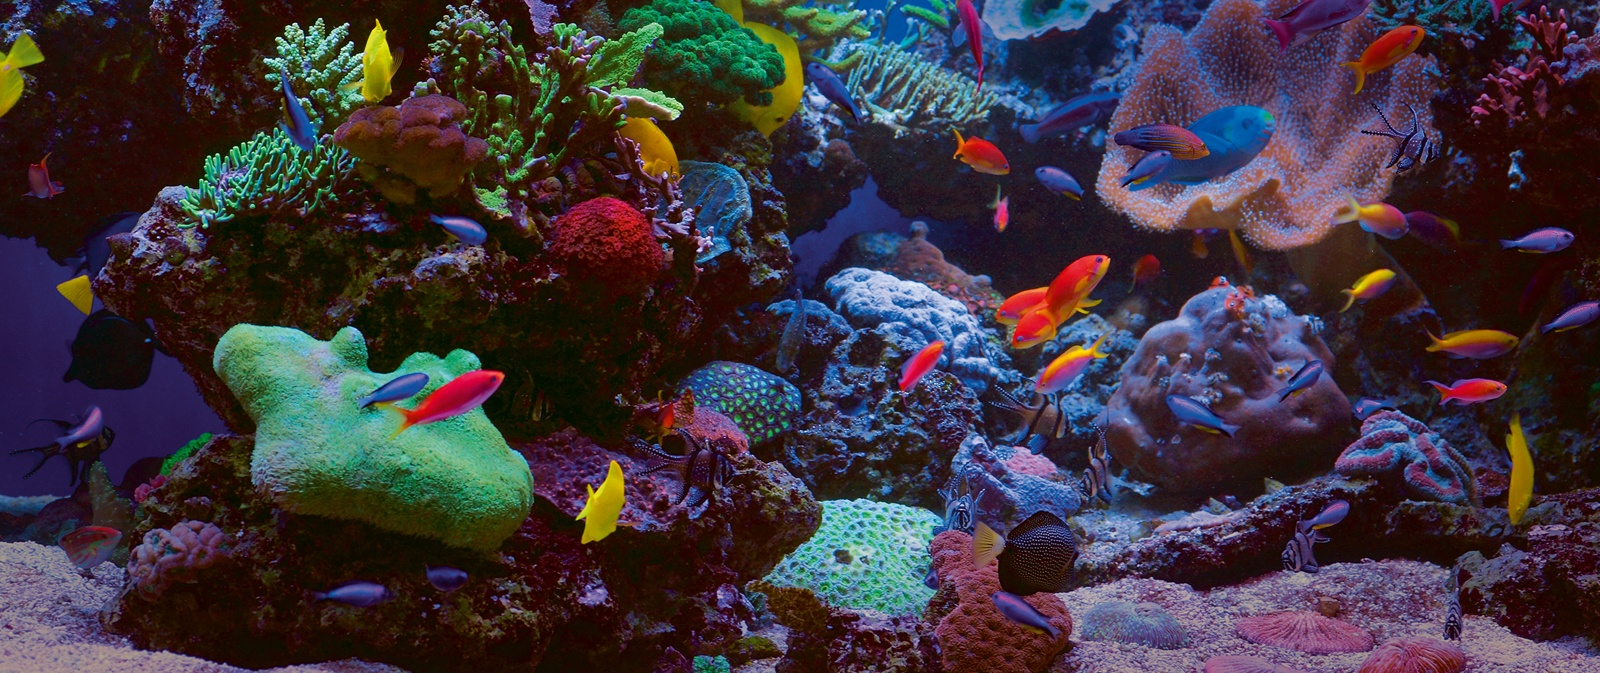 Marine anemones - flowers for the aquarium. Features and conditions of detention